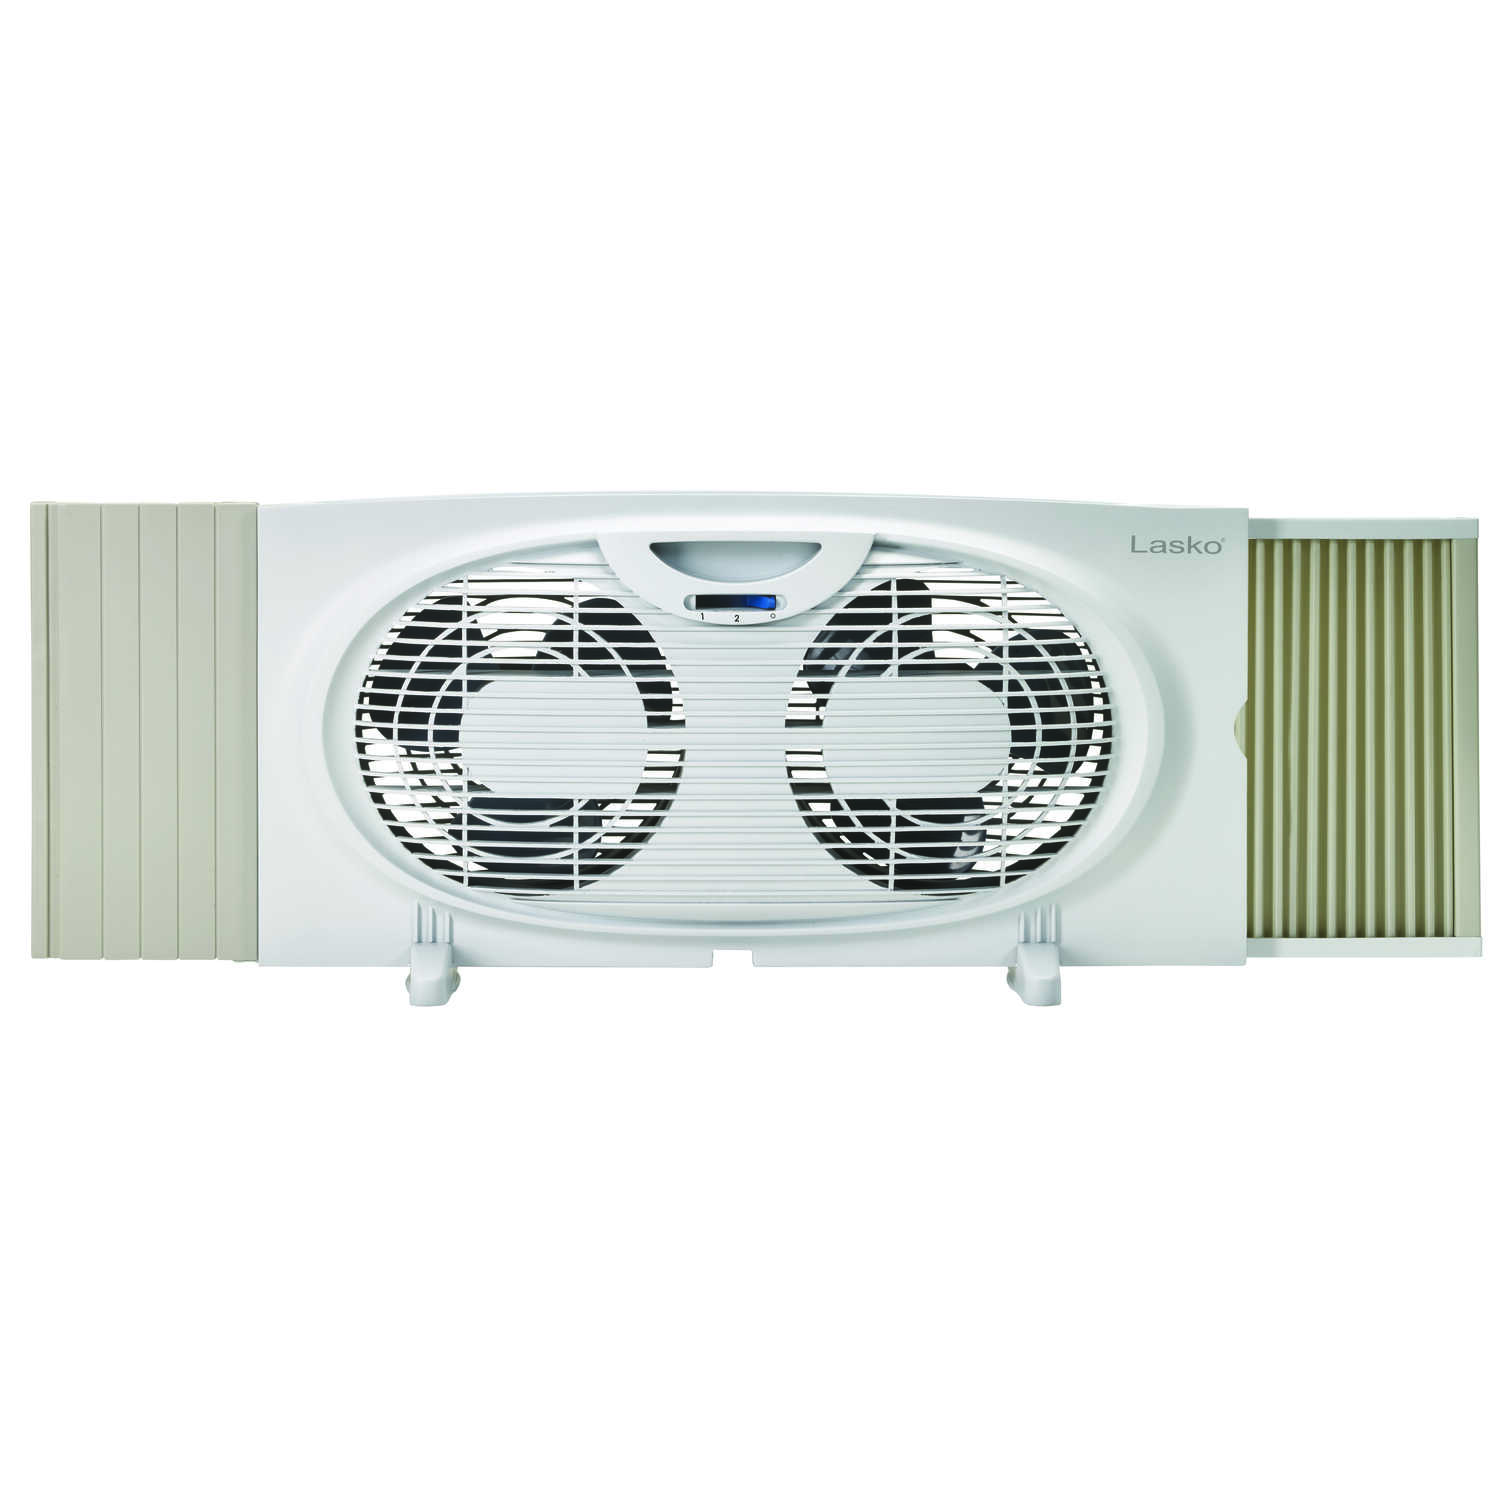 Lasko  10.15 in. H x 7 in. Dia. 3 speed Electric  Twin Window Fan